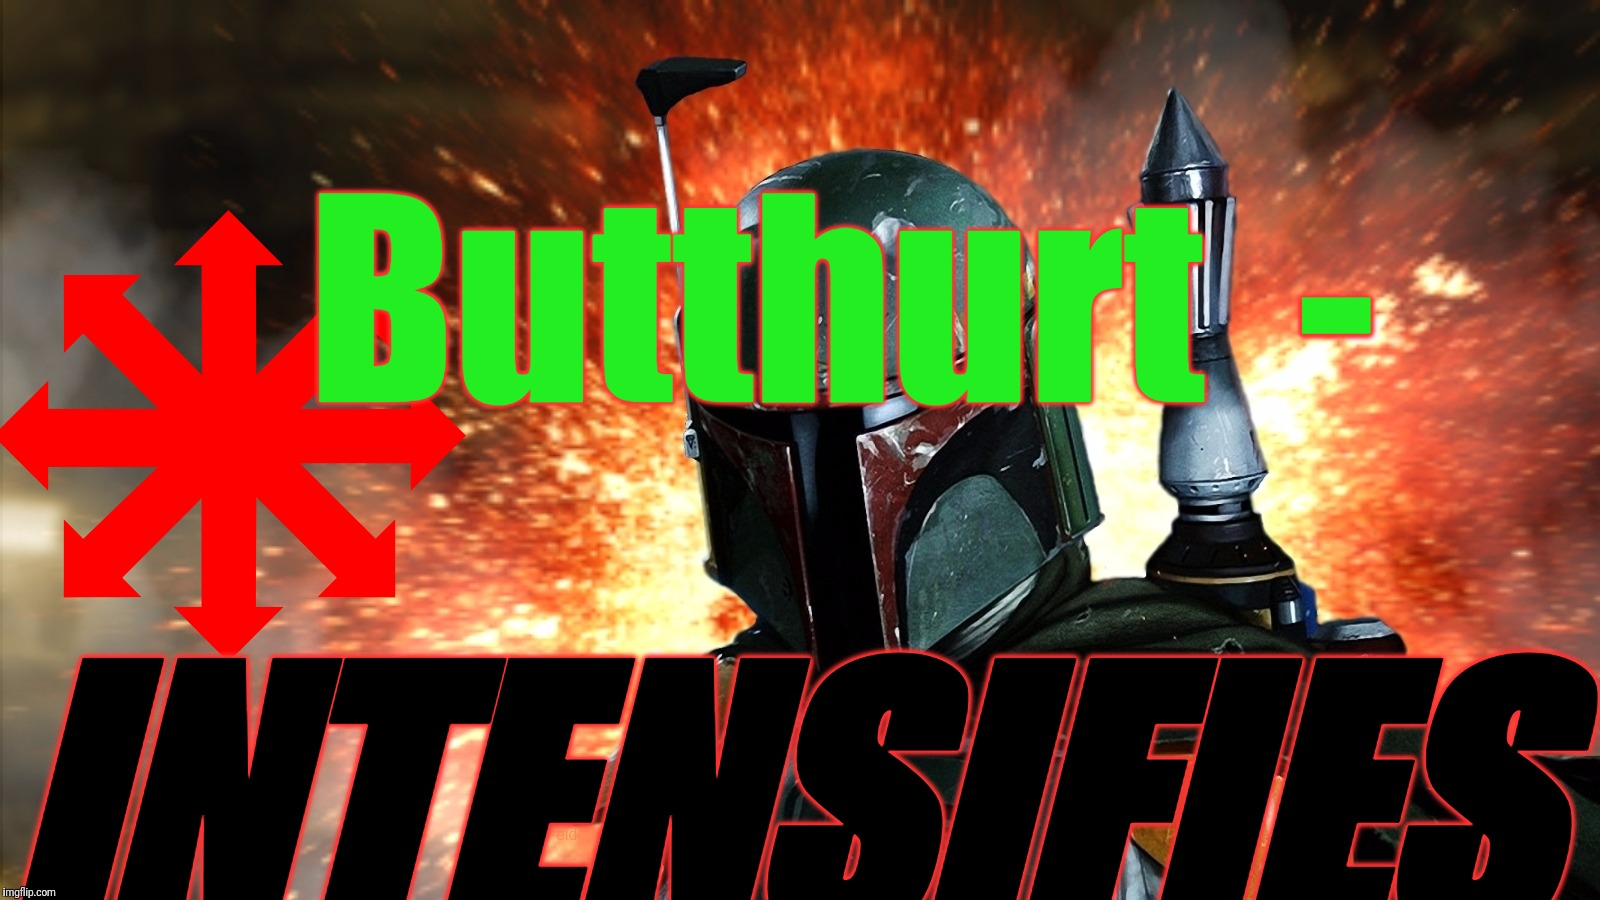 Boba Fett - explosions | INTENSIFIES Butthurt  - | image tagged in boba fett - explosions | made w/ Imgflip meme maker